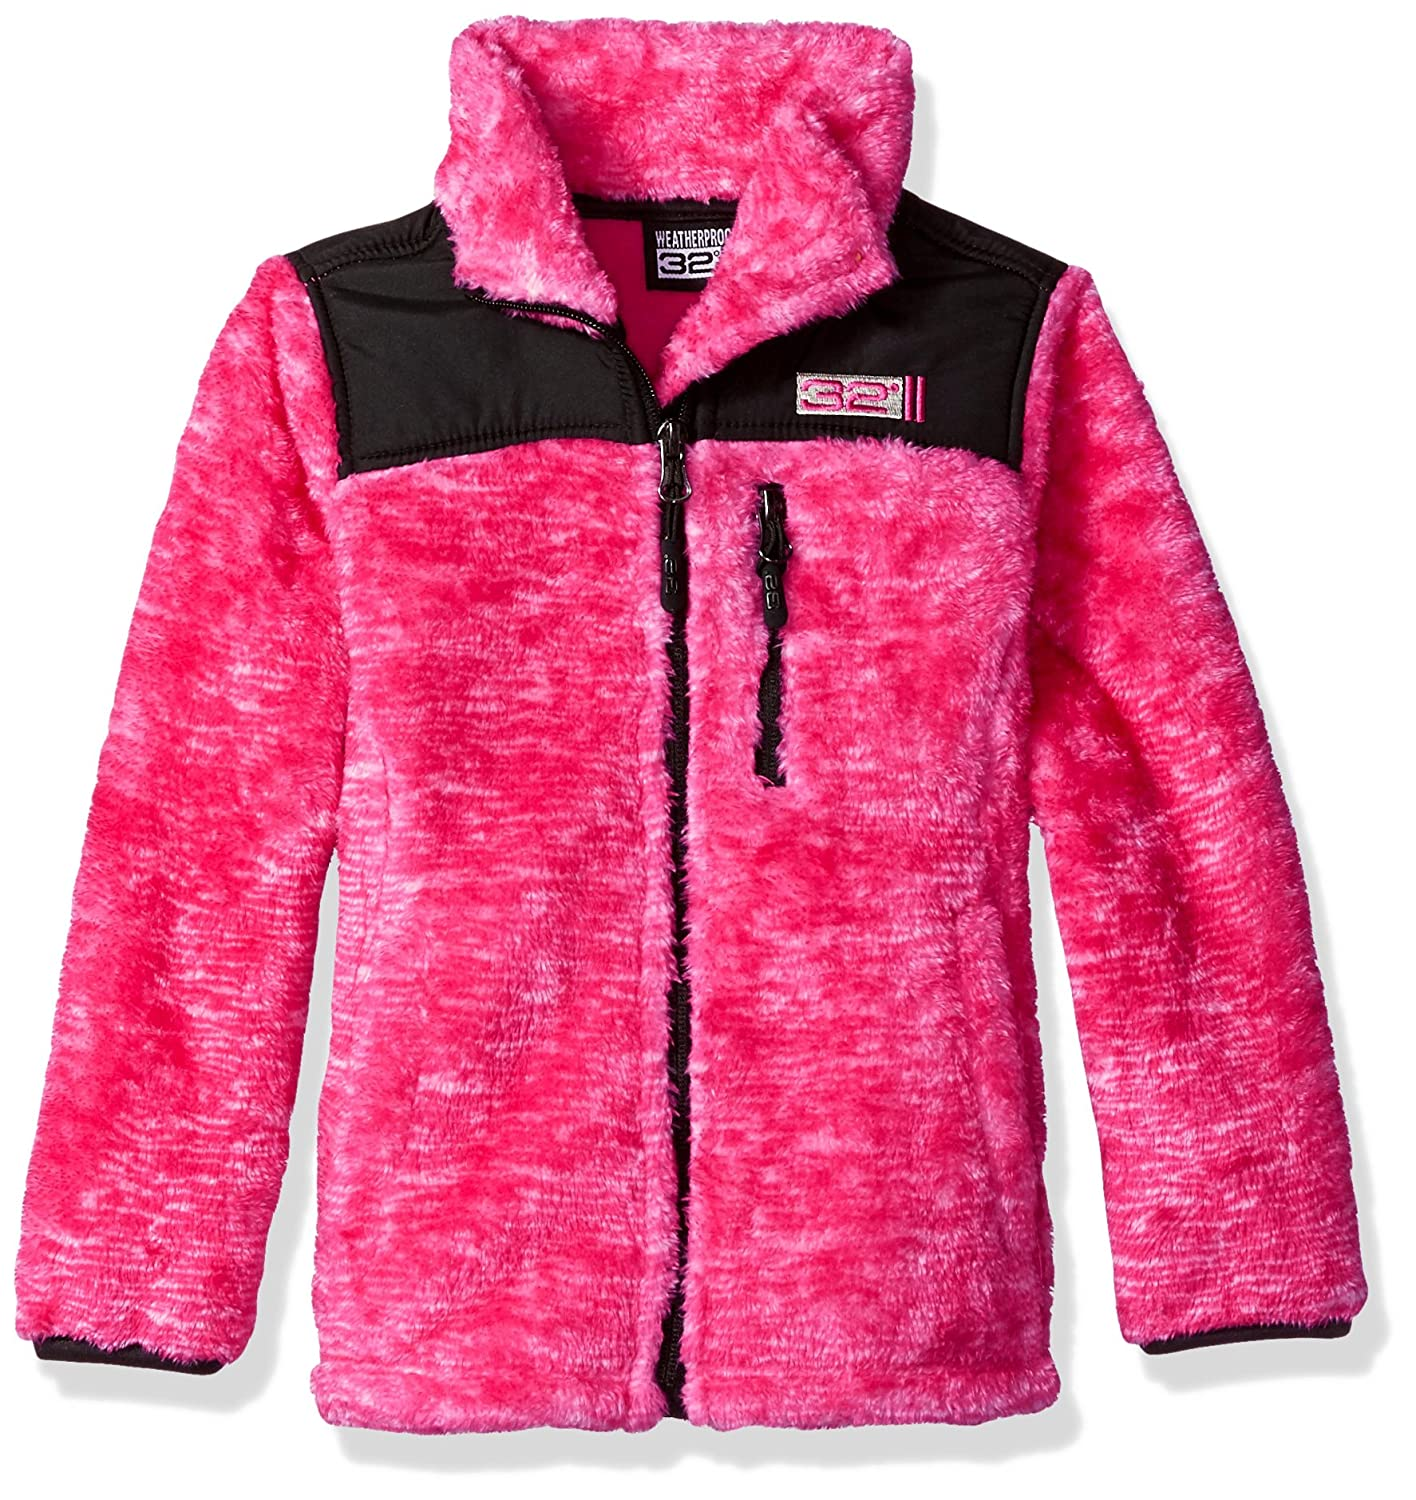 32 DEGREES Weatherproof Big Girls Outerwear Jacket (More Styles Available), Space Dye-WG197-Fuchsia, 14/16